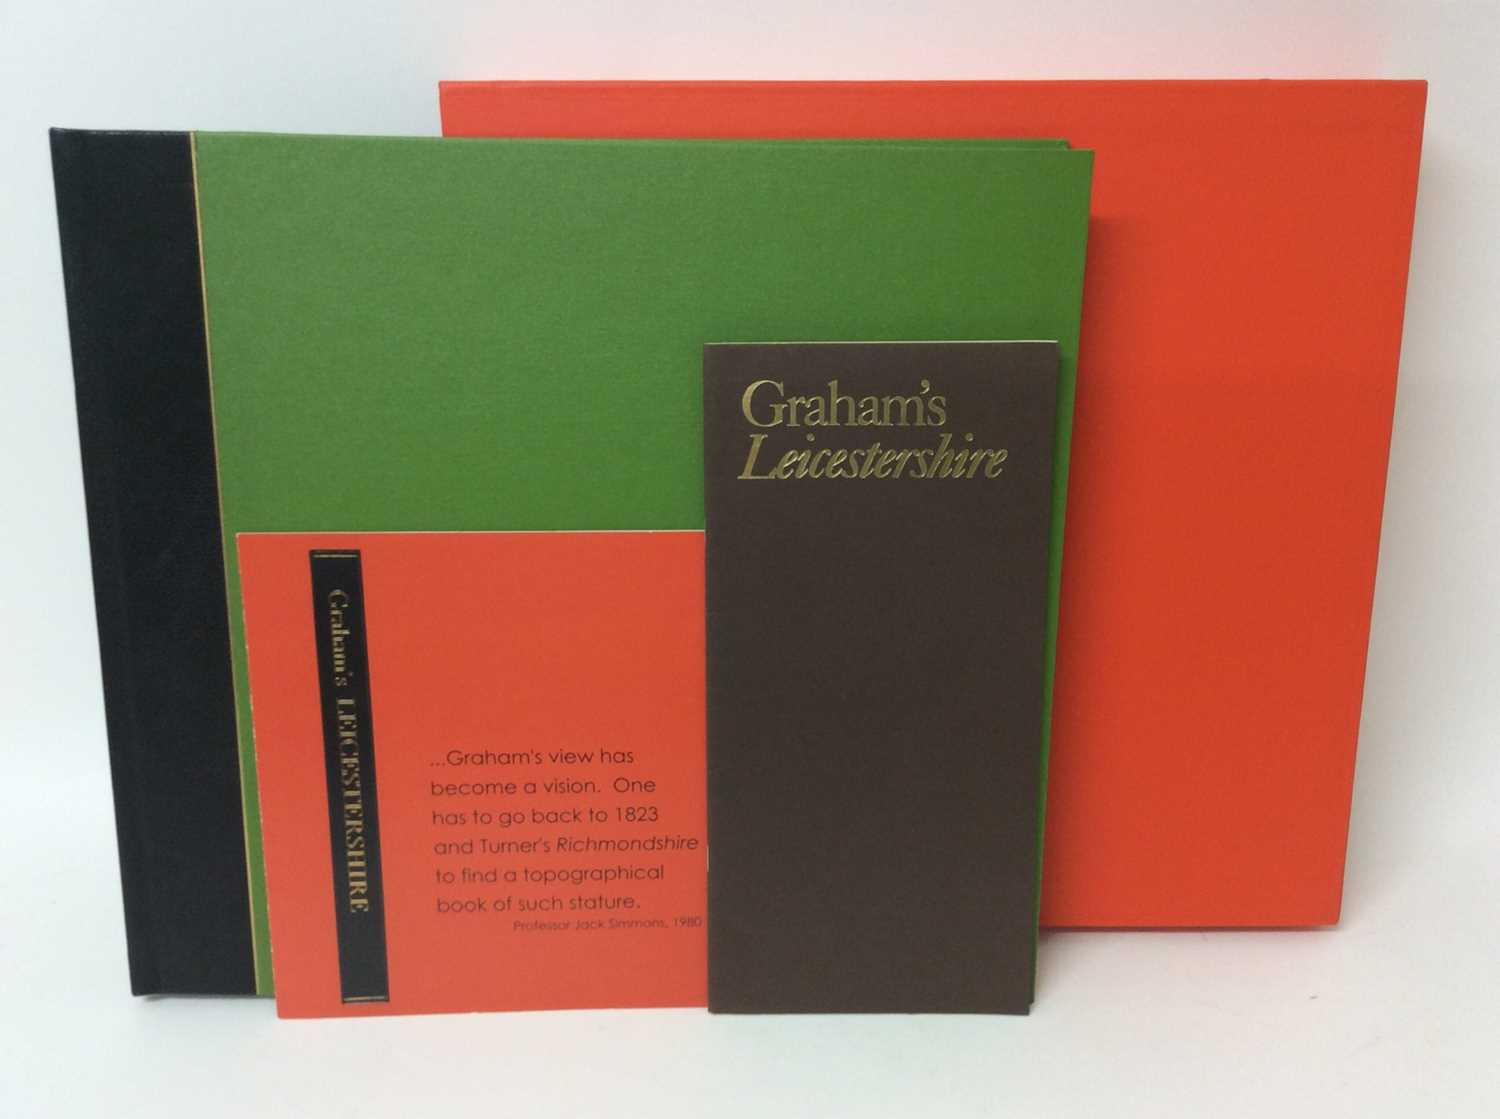 Rigby Graham, Leicestershire, Sycamore Press / Gadsby Gallery, Leicester 1980, folio book in slip co